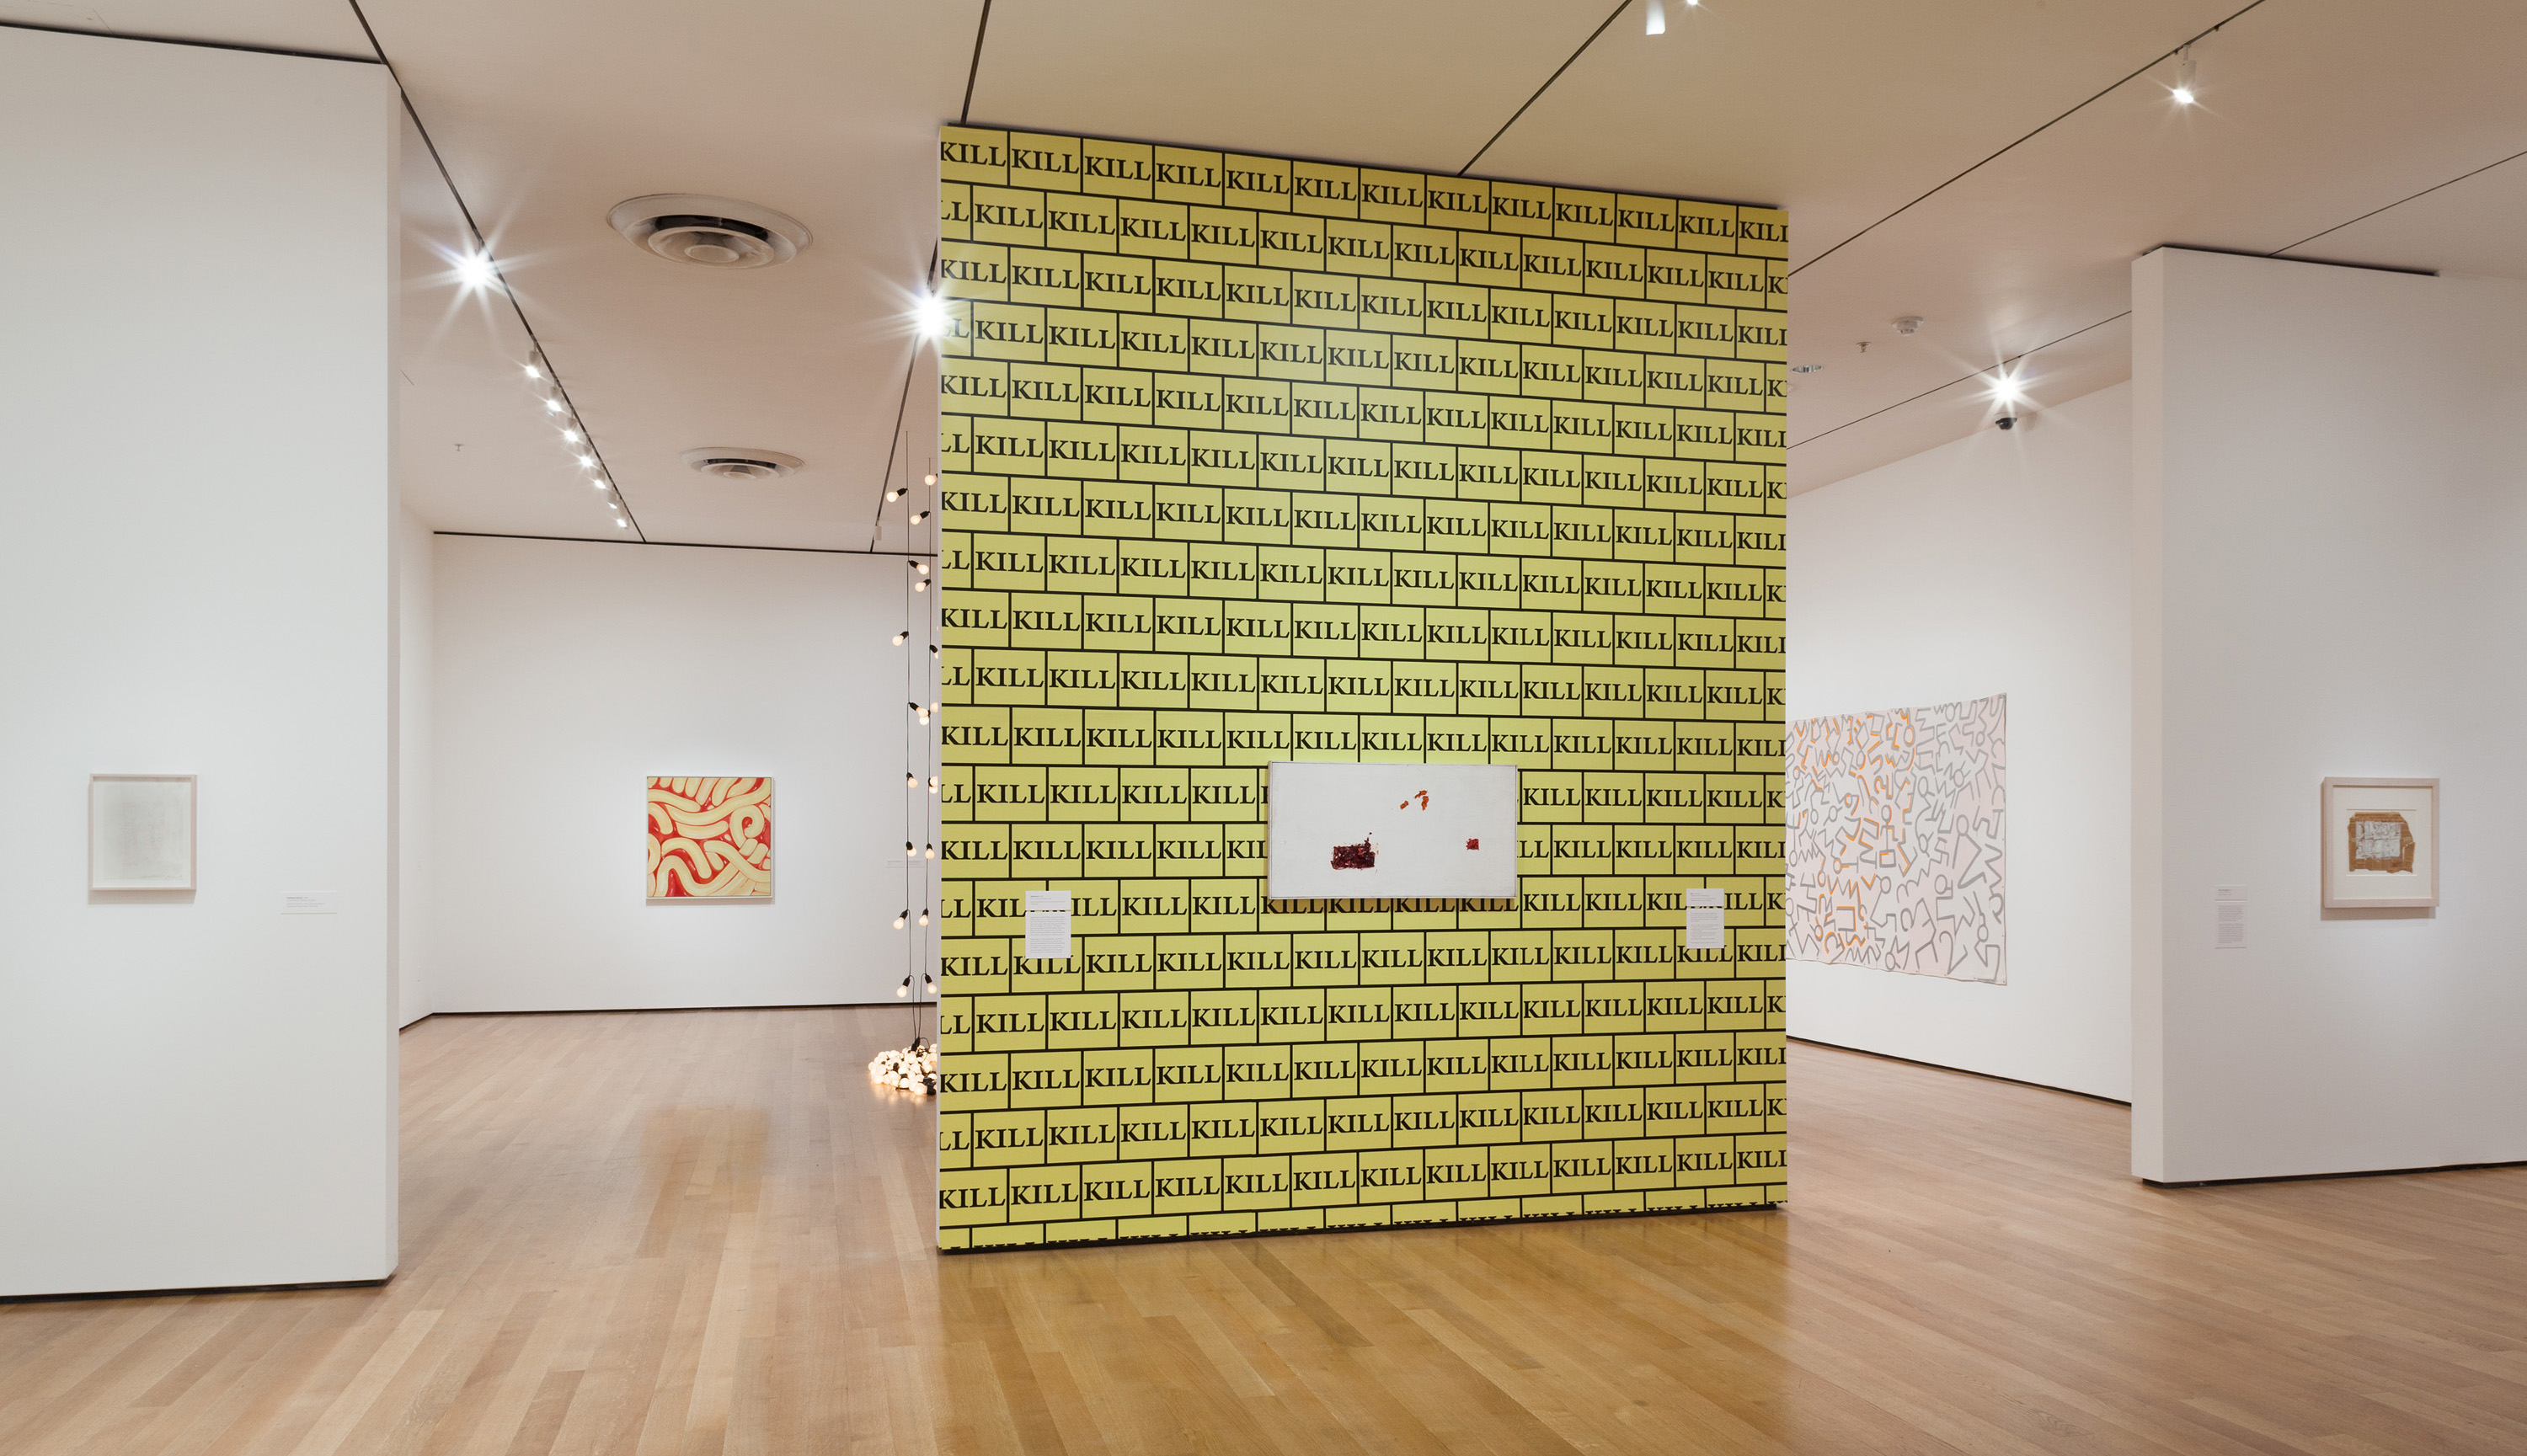 Installation view of Sturtevant: Double Trouble, The Museum of Modern Art, November 9, 2014–February 22, 2015. © 2014 The Museum of Modern Art. Photo: Thomas Griesel. All works by Sturtevant © Estate Sturtevant, Paris.